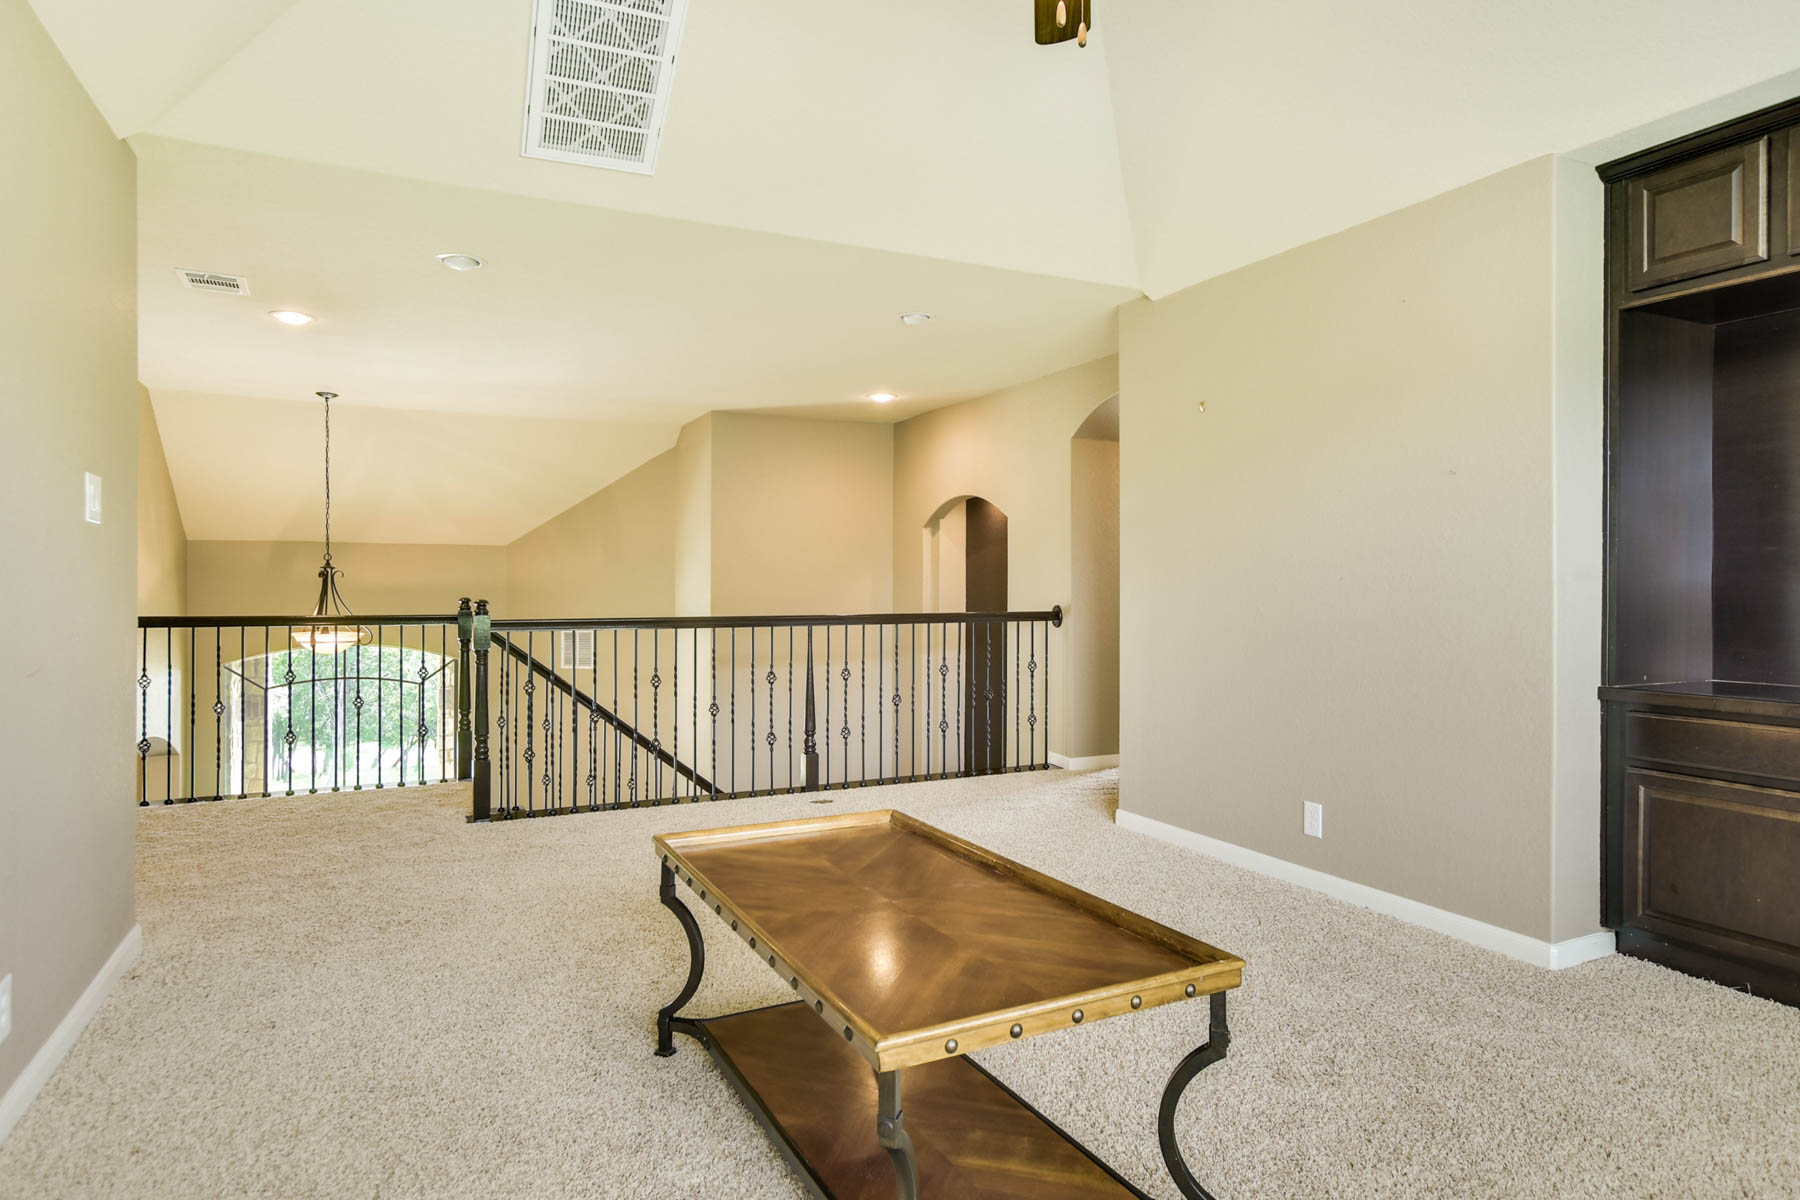 Additional photo for property listing at Breathtaking Home in Mission Hills Ranch 911 Santa Cruz New Braunfels, Texas 78132 Estados Unidos